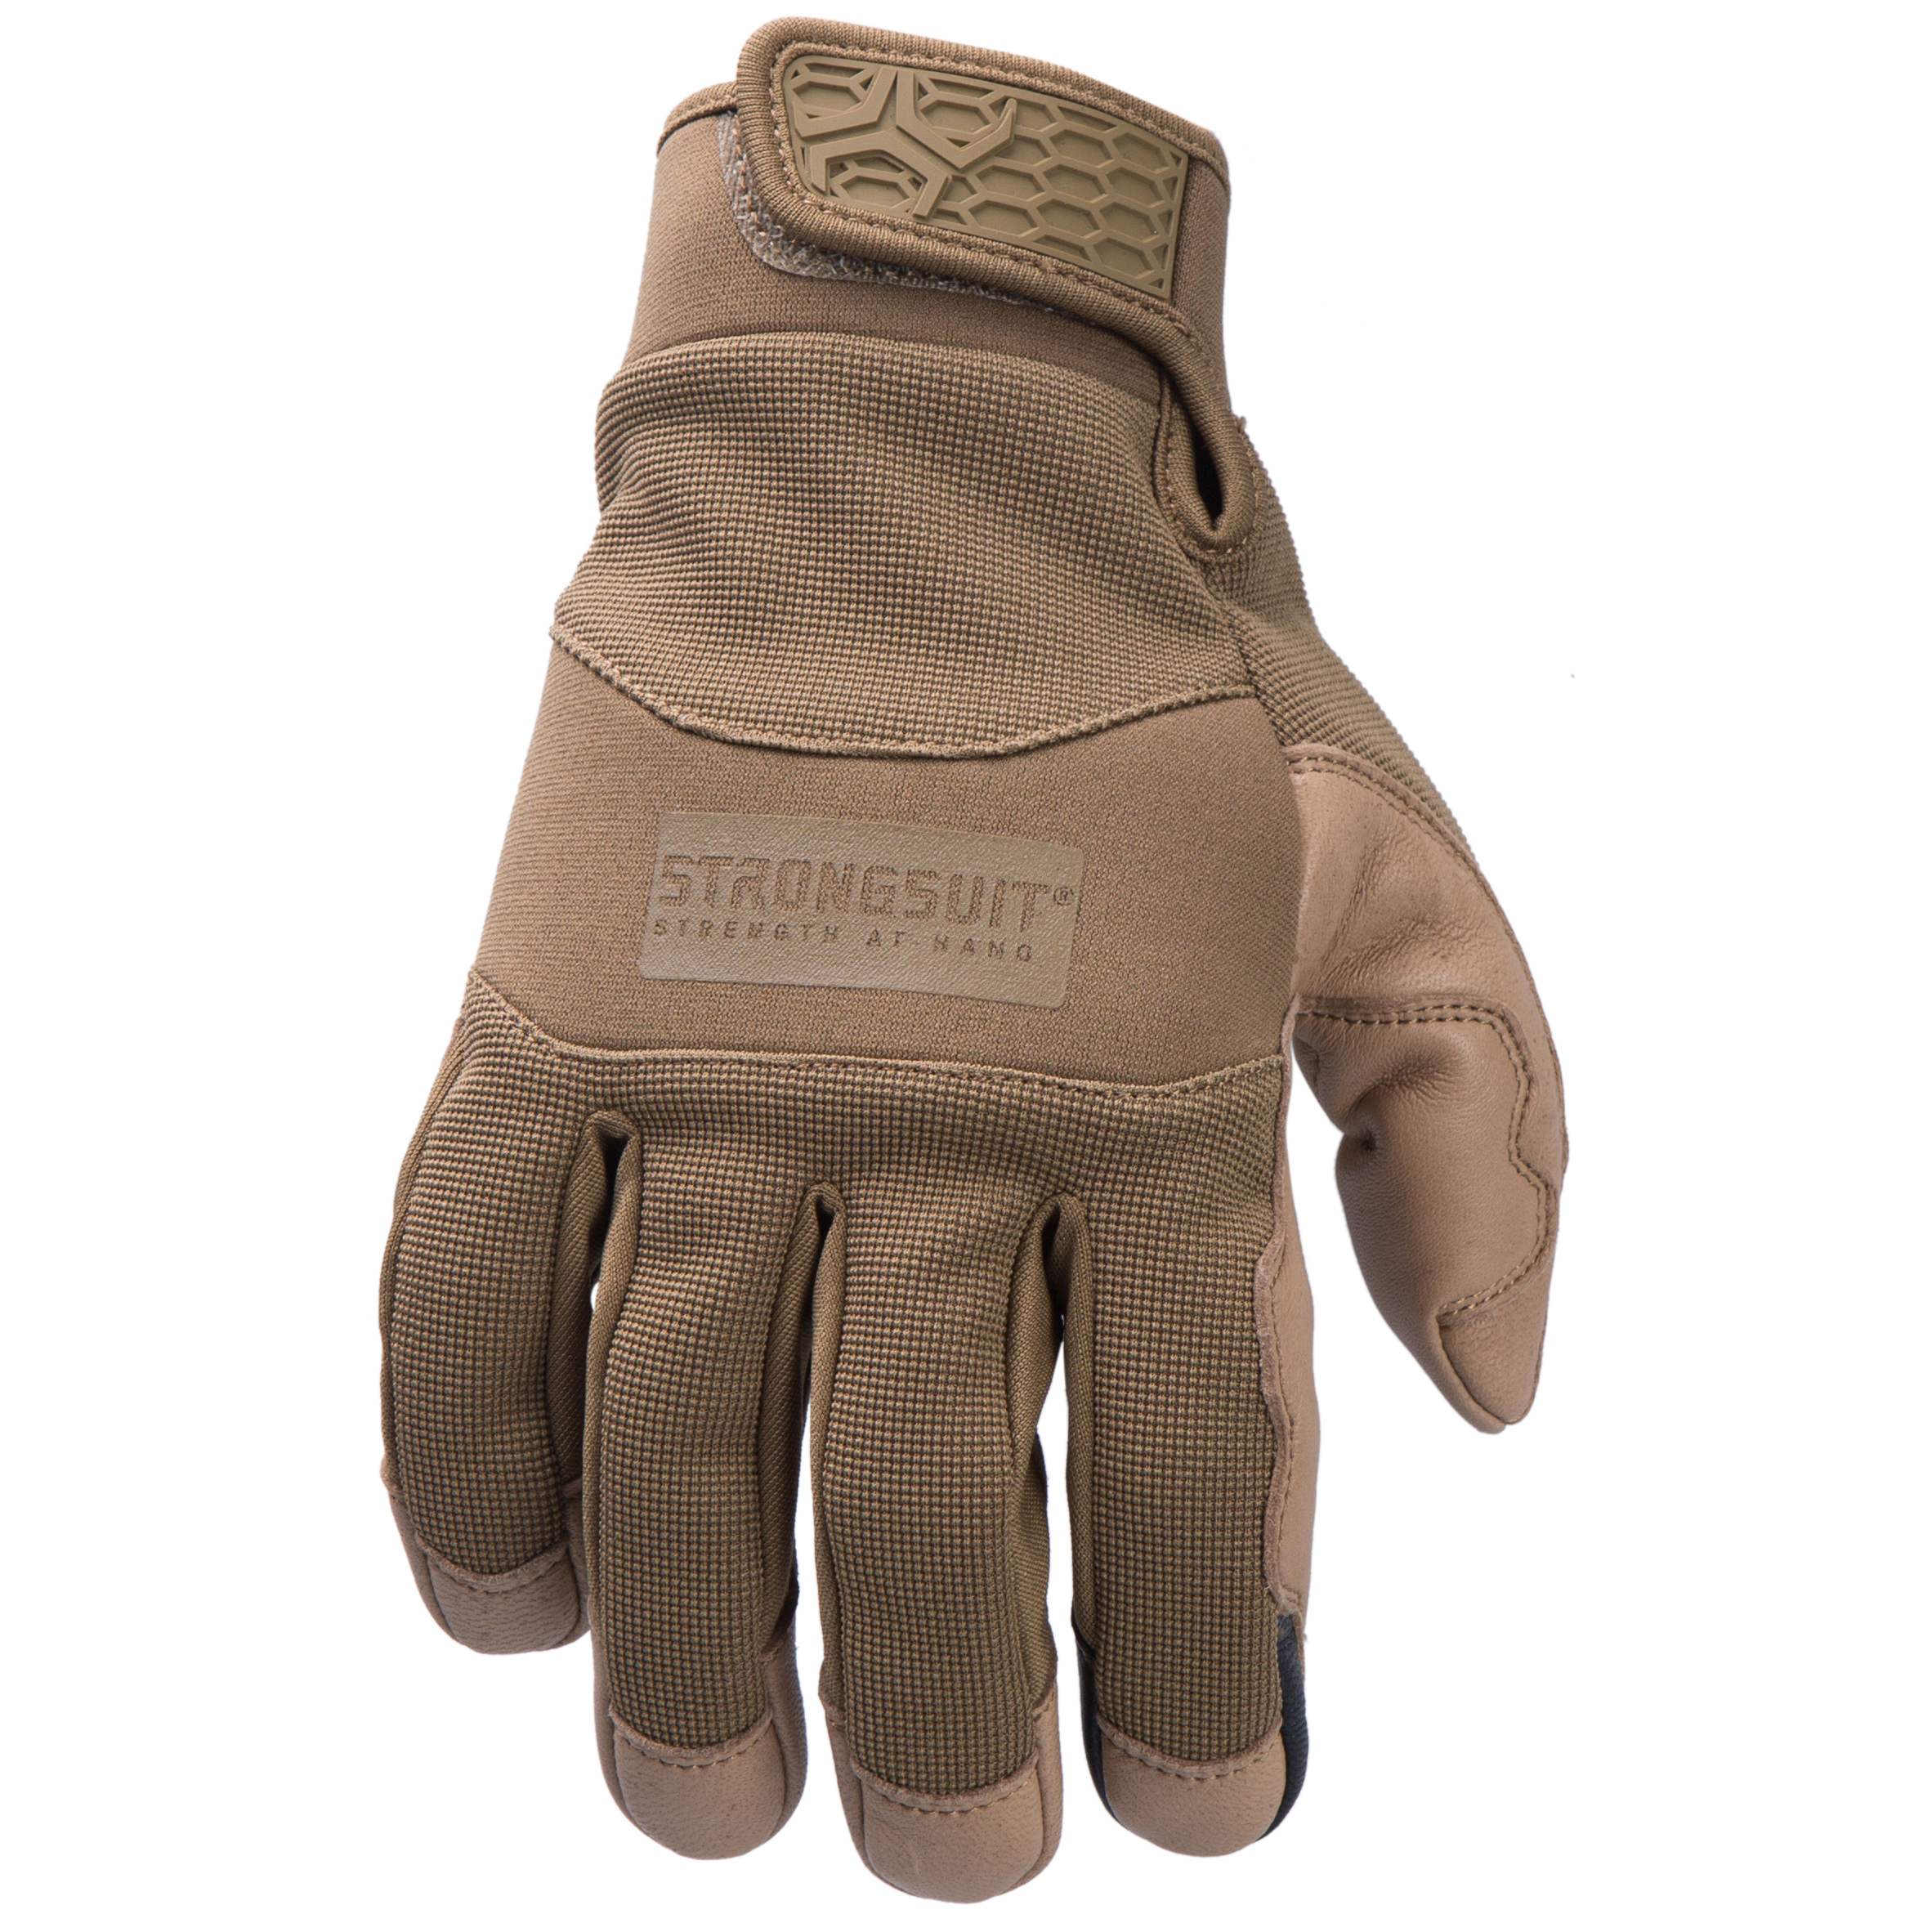 General Utility Mens Gloves, Coyote, XXL